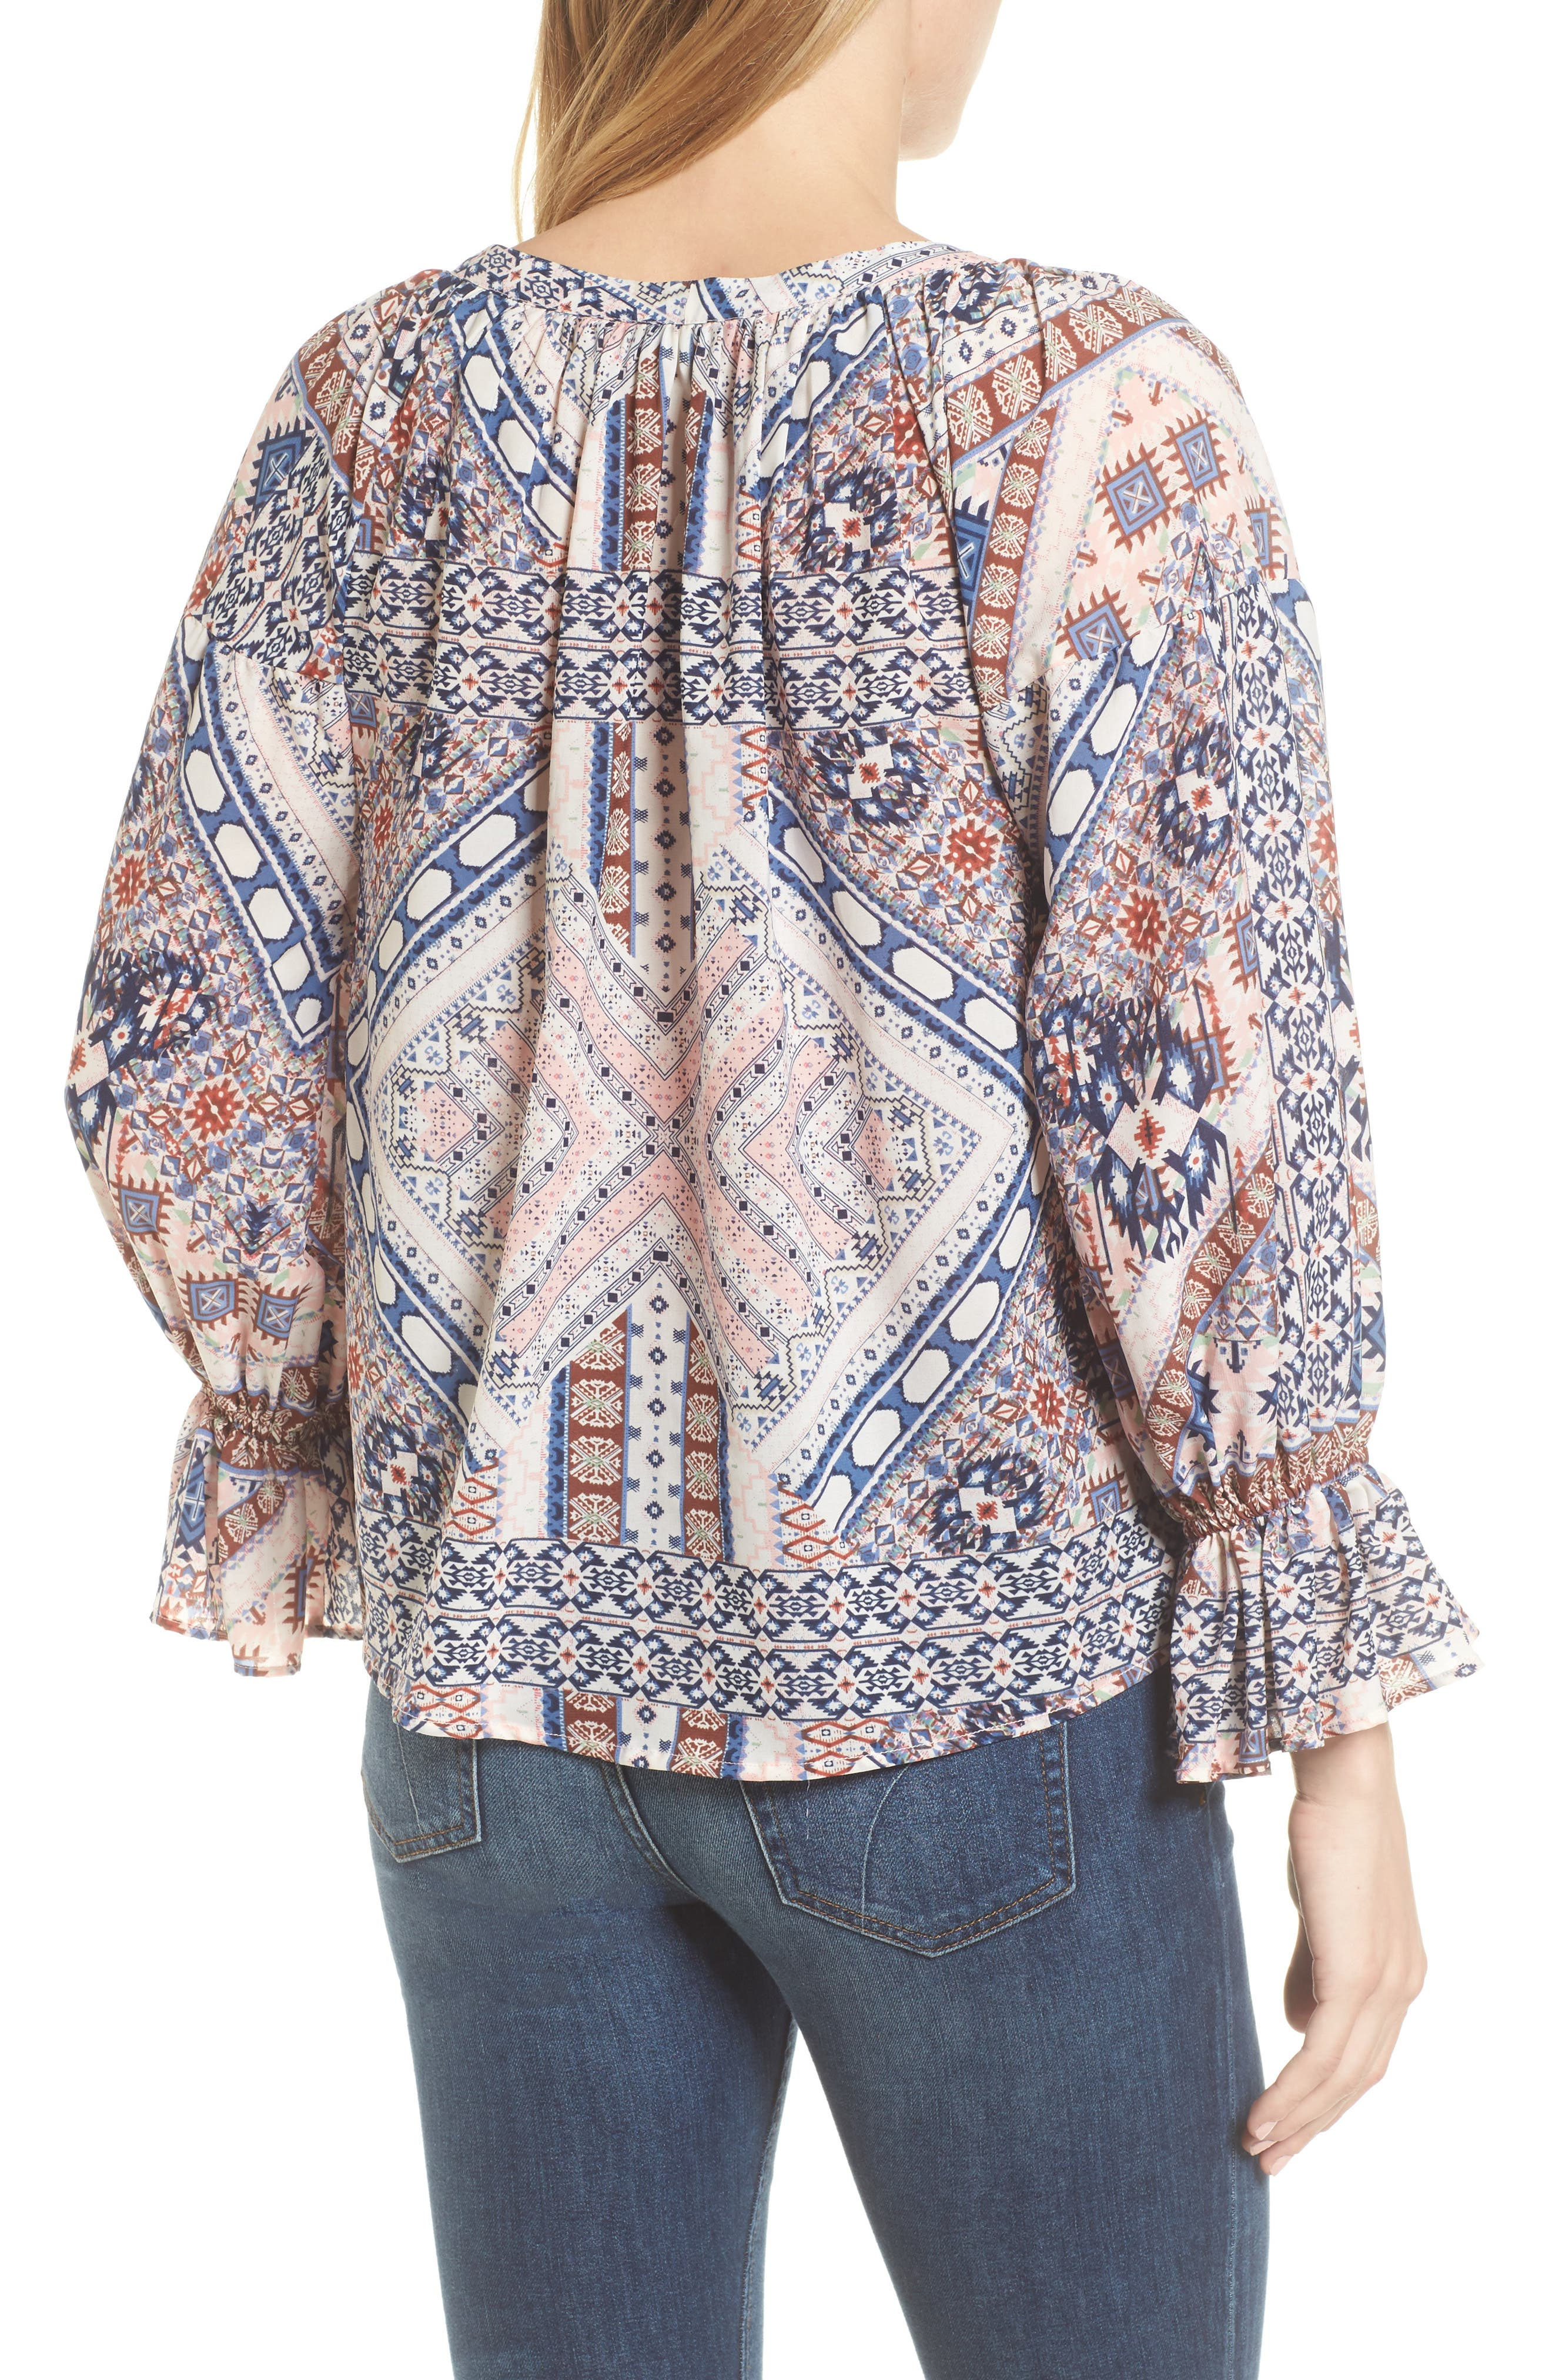 Belfast Ikat Peasant Blouse,                             Alternate thumbnail 2, color,                             Ikat Print